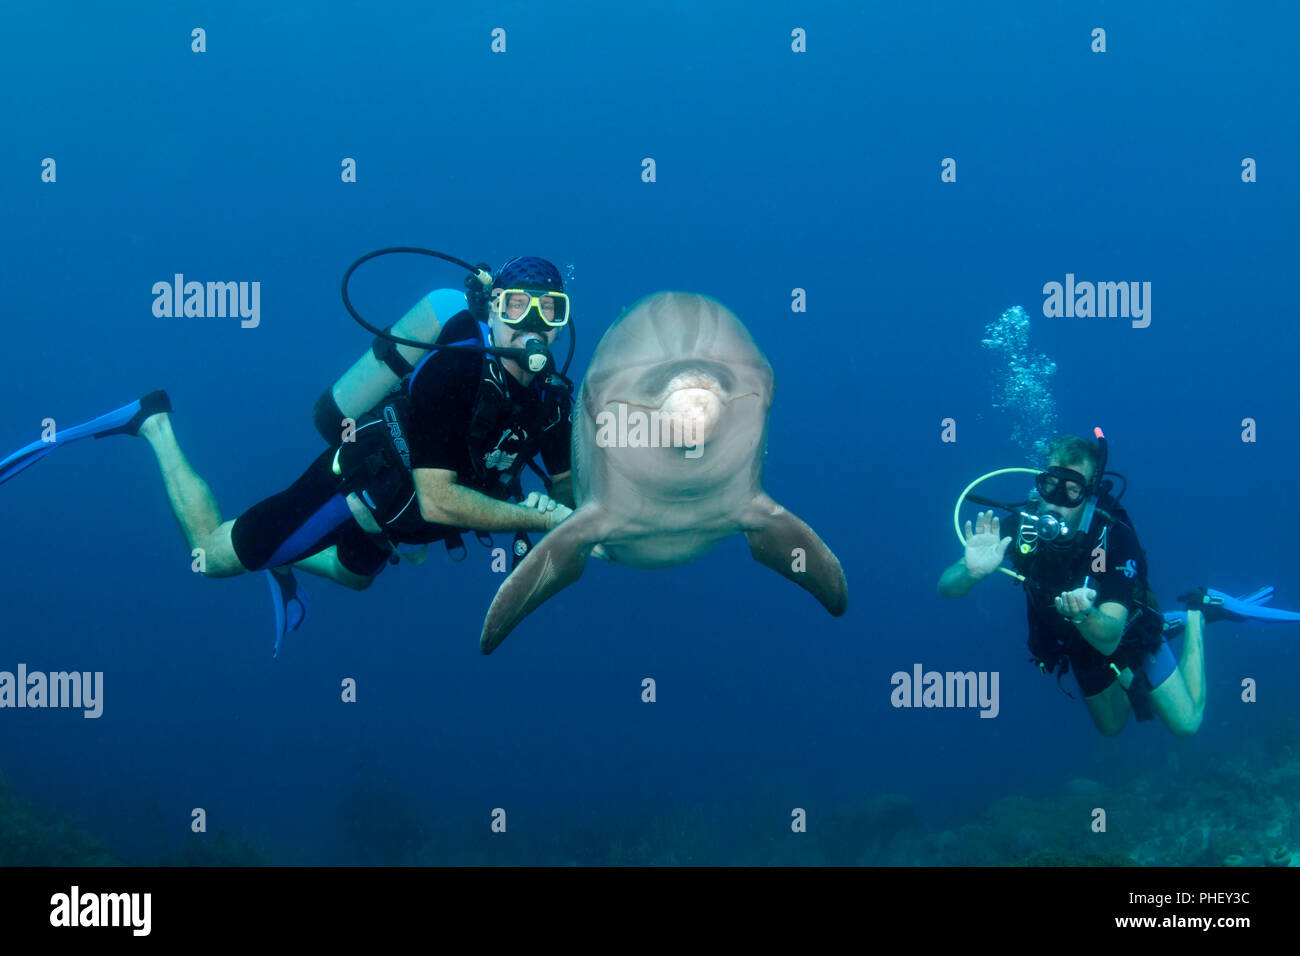 Divers (MR) meet a trained Atlantic Bottlenose Dolphin, Tursiops truncatus, on the Sea Aquarium House Reef off the island of Curacao in the Netherland - Stock Image